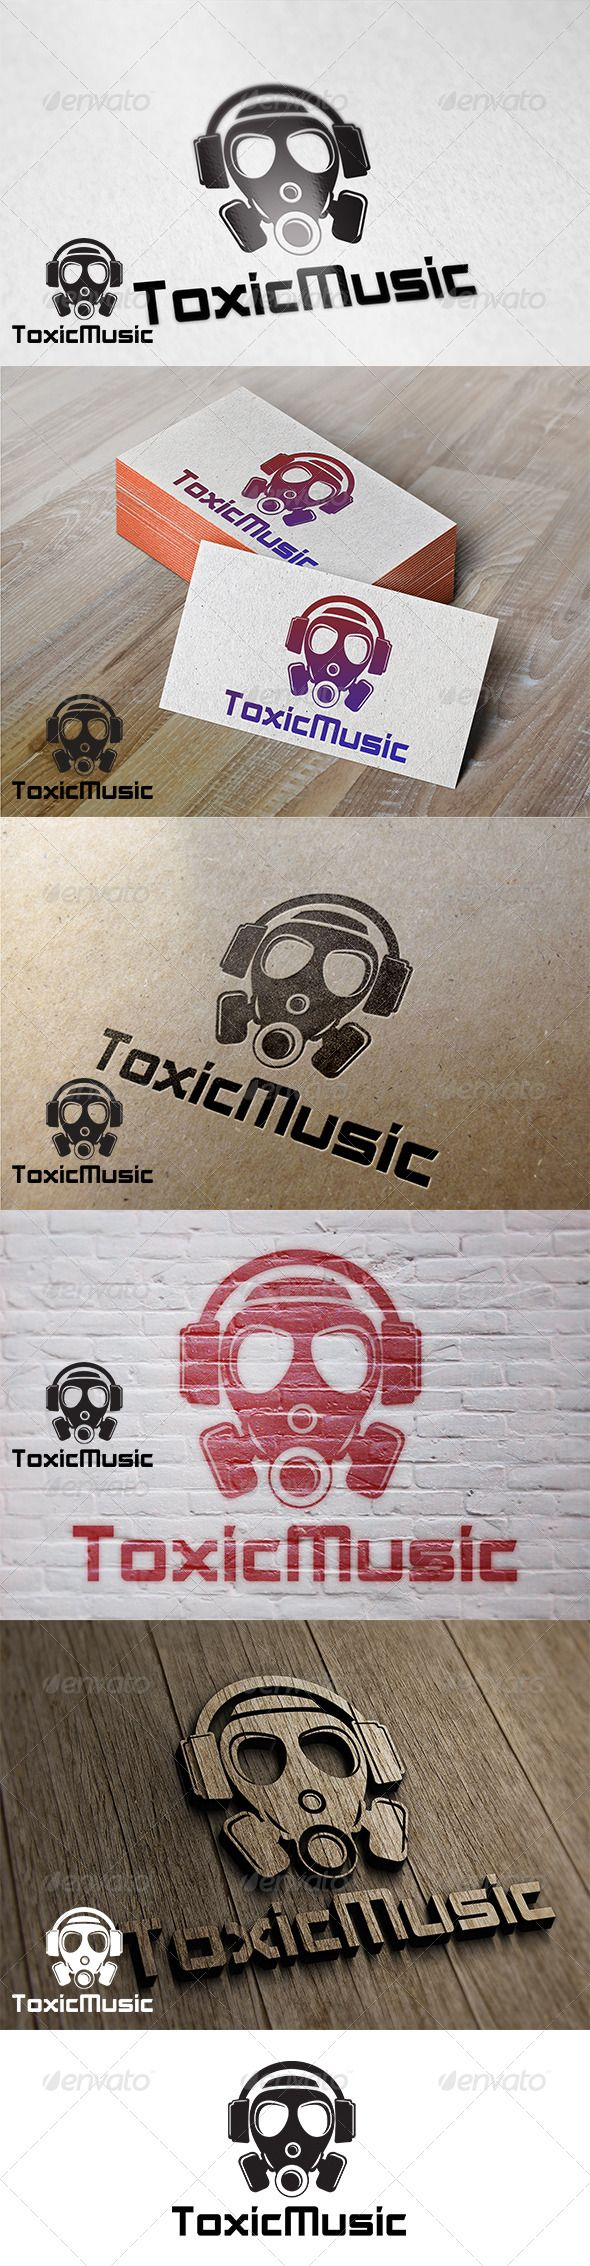 Toxic Music  - Logo Design Template Vector #logotype Download it here: http://graphicriver.net/item/toxic-music-logo/7321570?s_rank=1295?ref=nesto